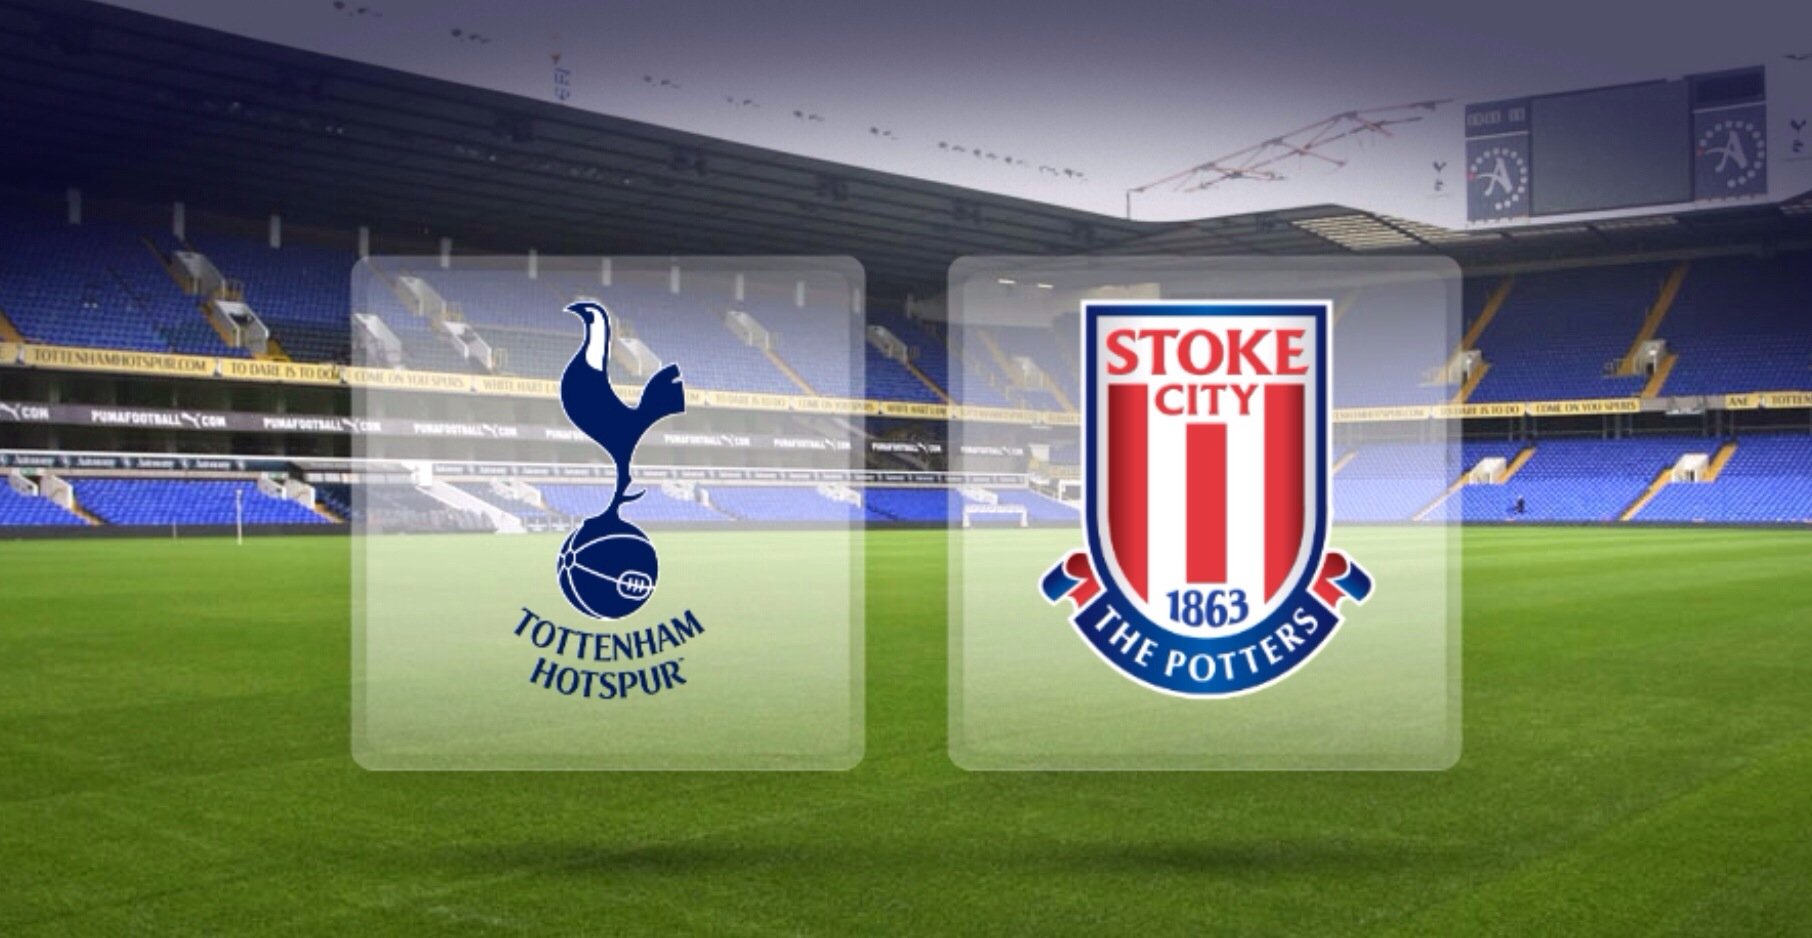 BPL Preview: Tottenham Hotspurvs Stoke City 8